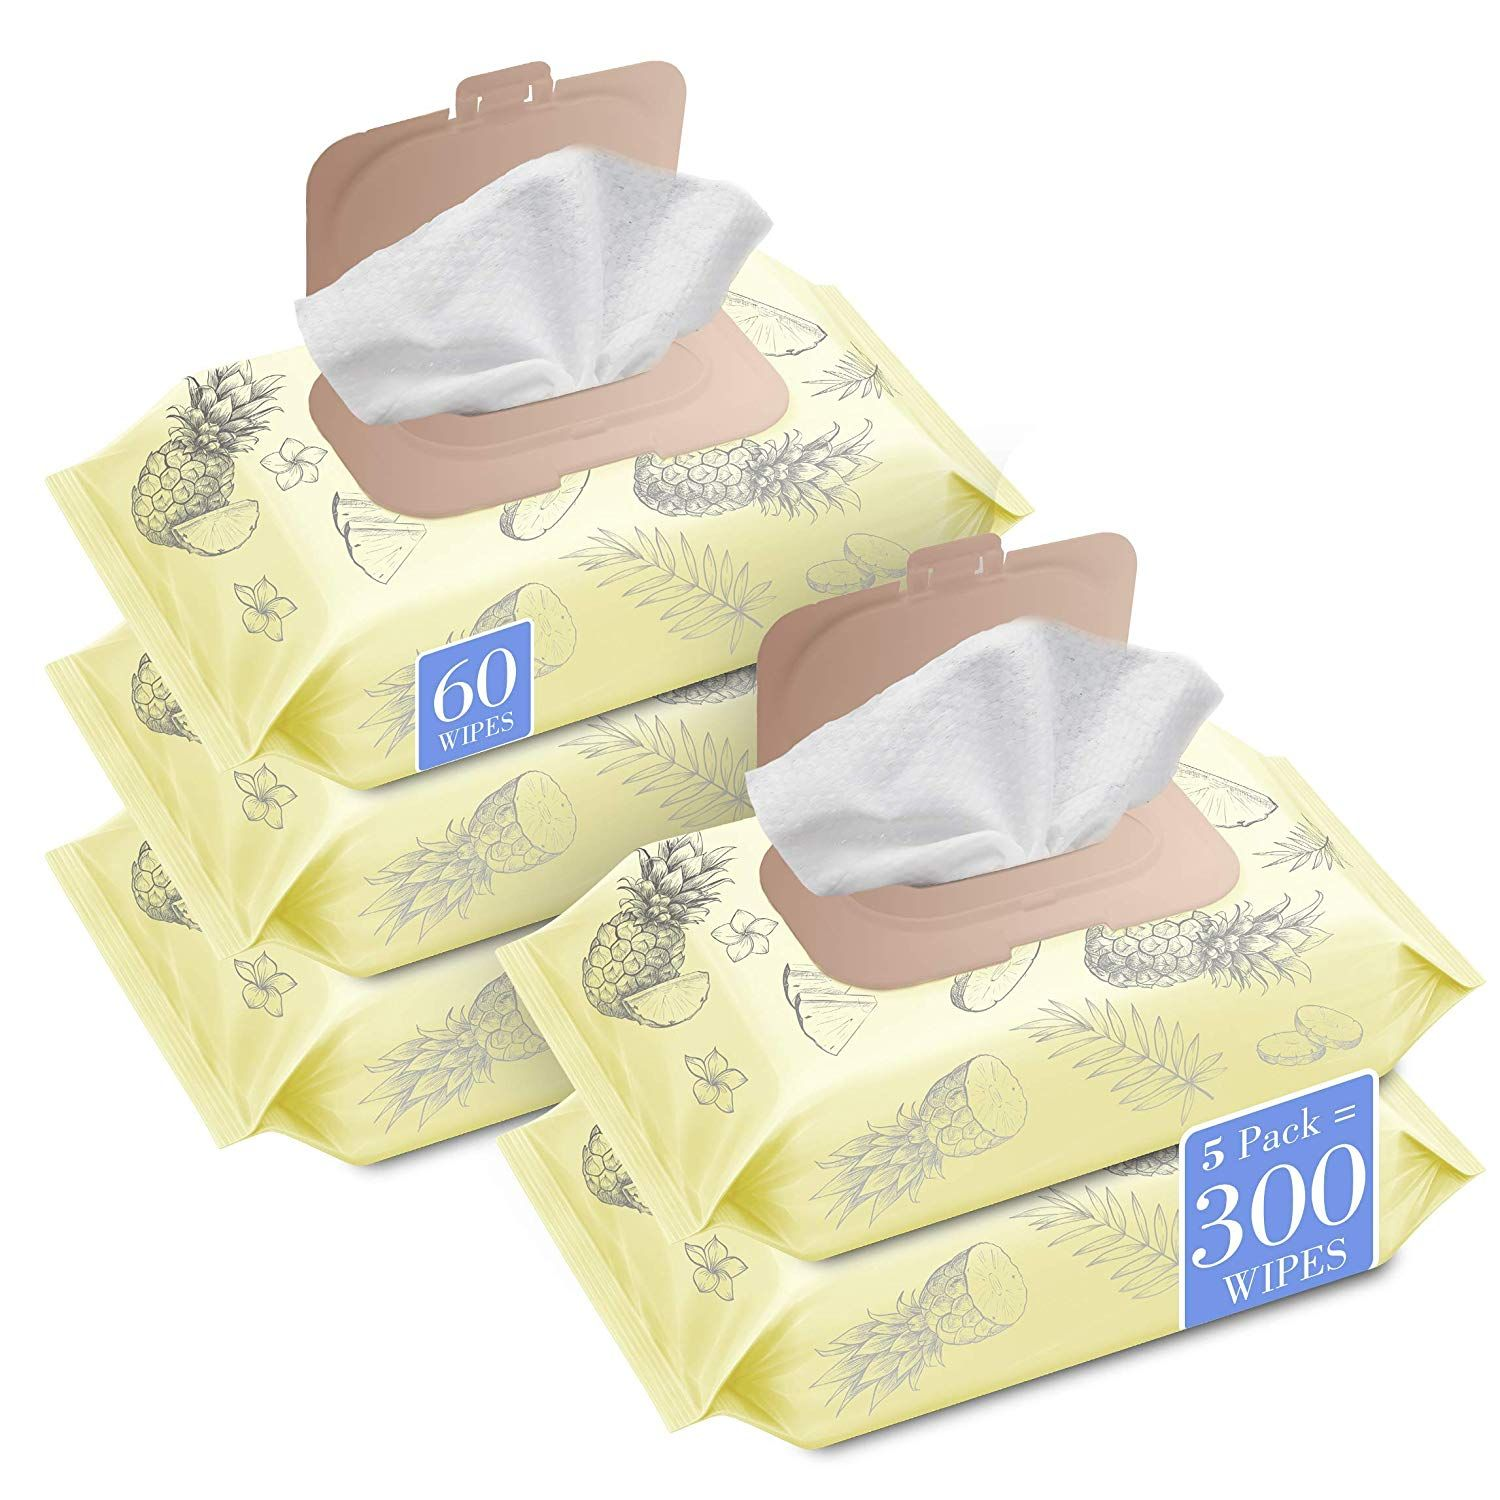 Herb & Luxe Face Wipes, Makeup Remover Facial Cleansing